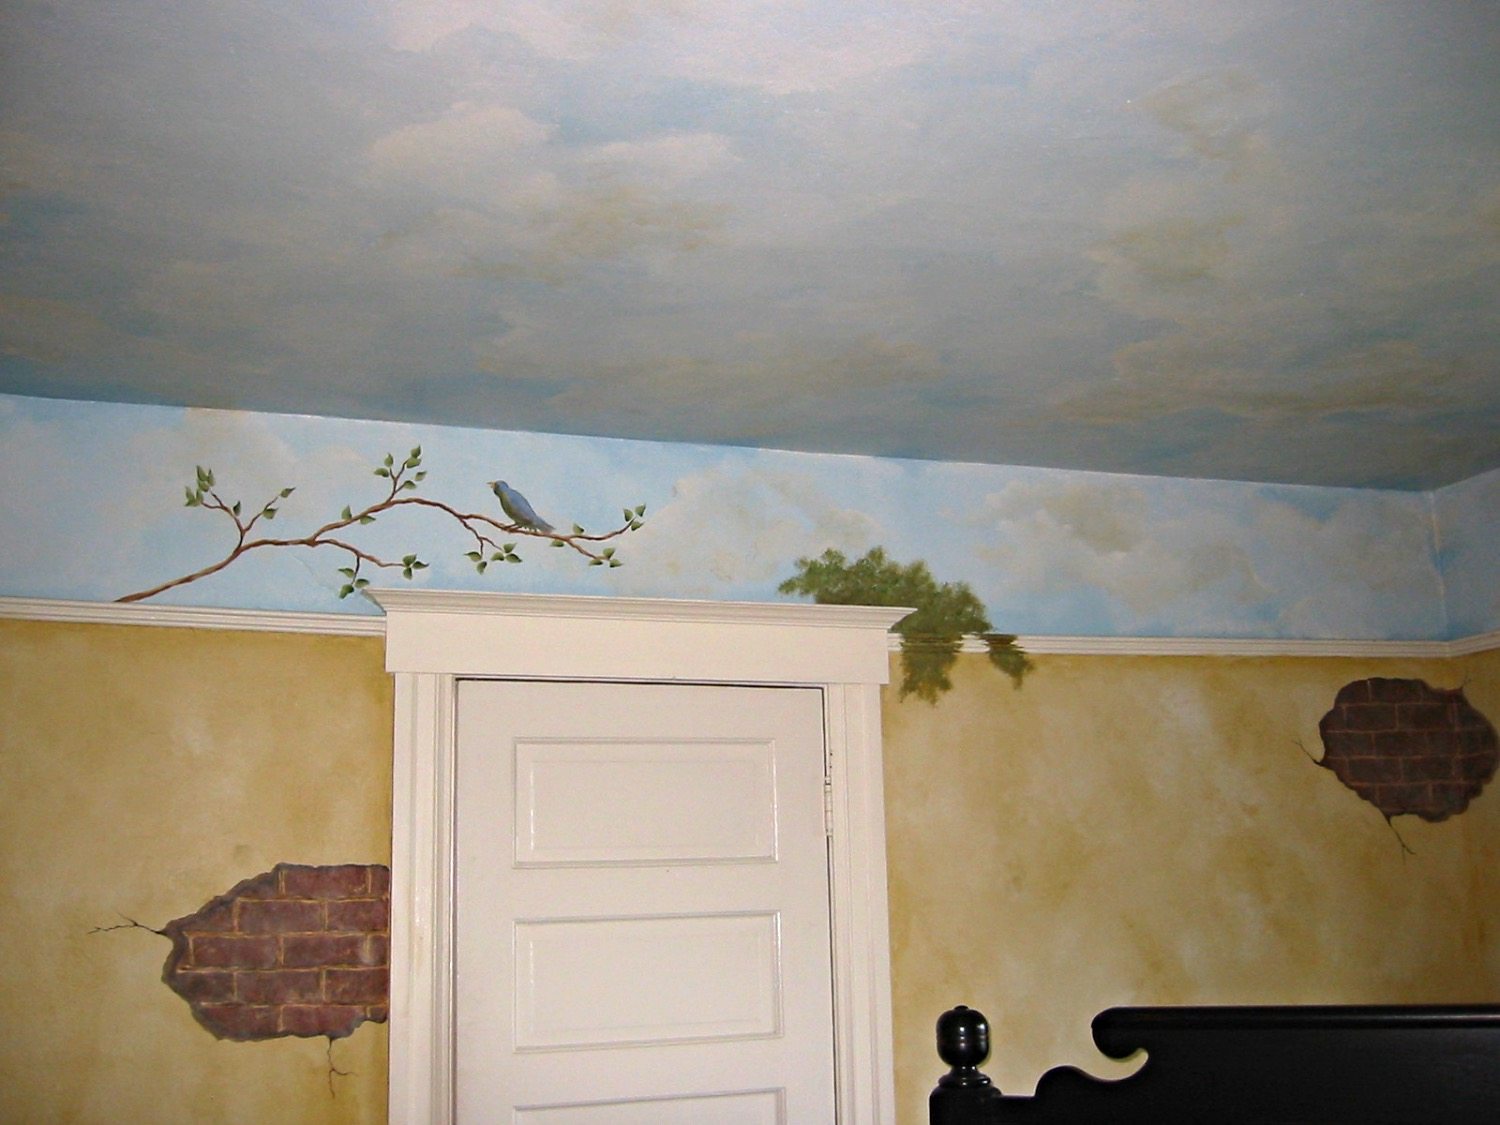 Clouds, faux finish, brick, & twigs